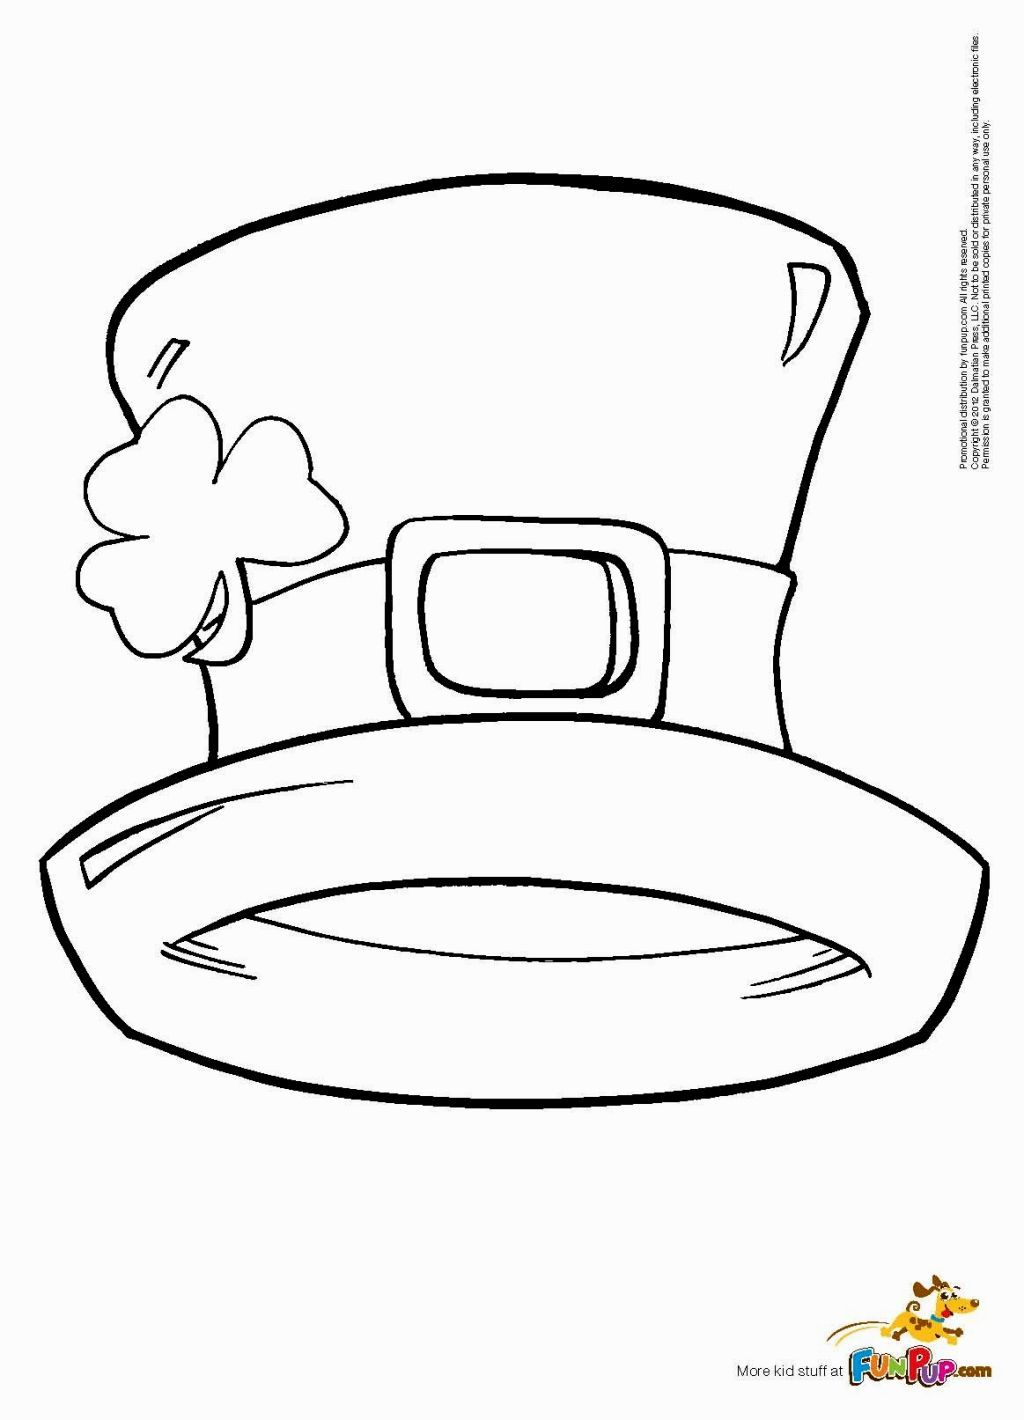 Coloring Pages For March Coloring pages, March month